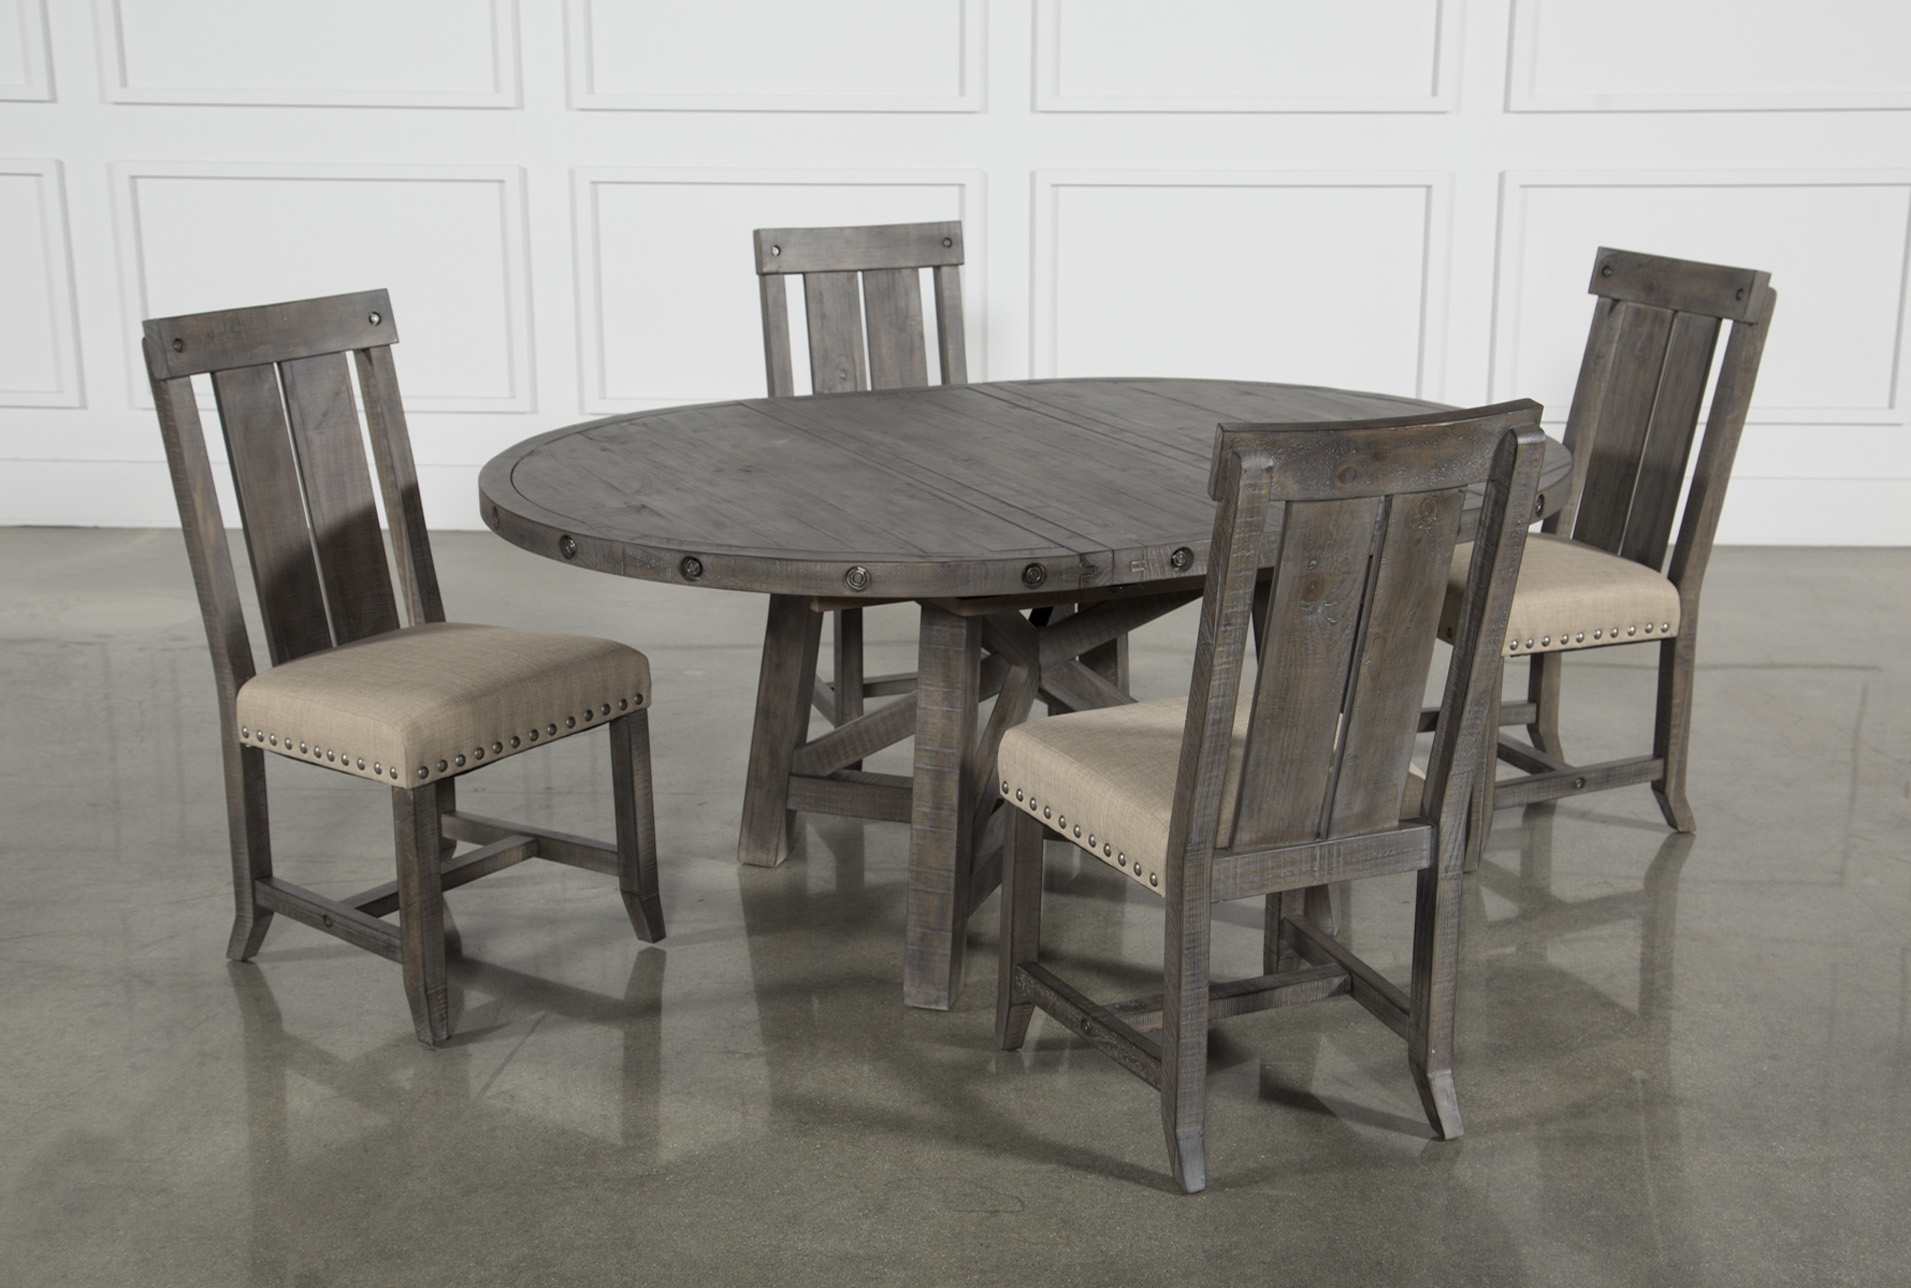 Jaxon Grey 5 Piece Round Extension Dining Set W/wood Chairs | Dining Inside Recent Jaxon 5 Piece Extension Round Dining Sets With Wood Chairs (Image 10 of 20)